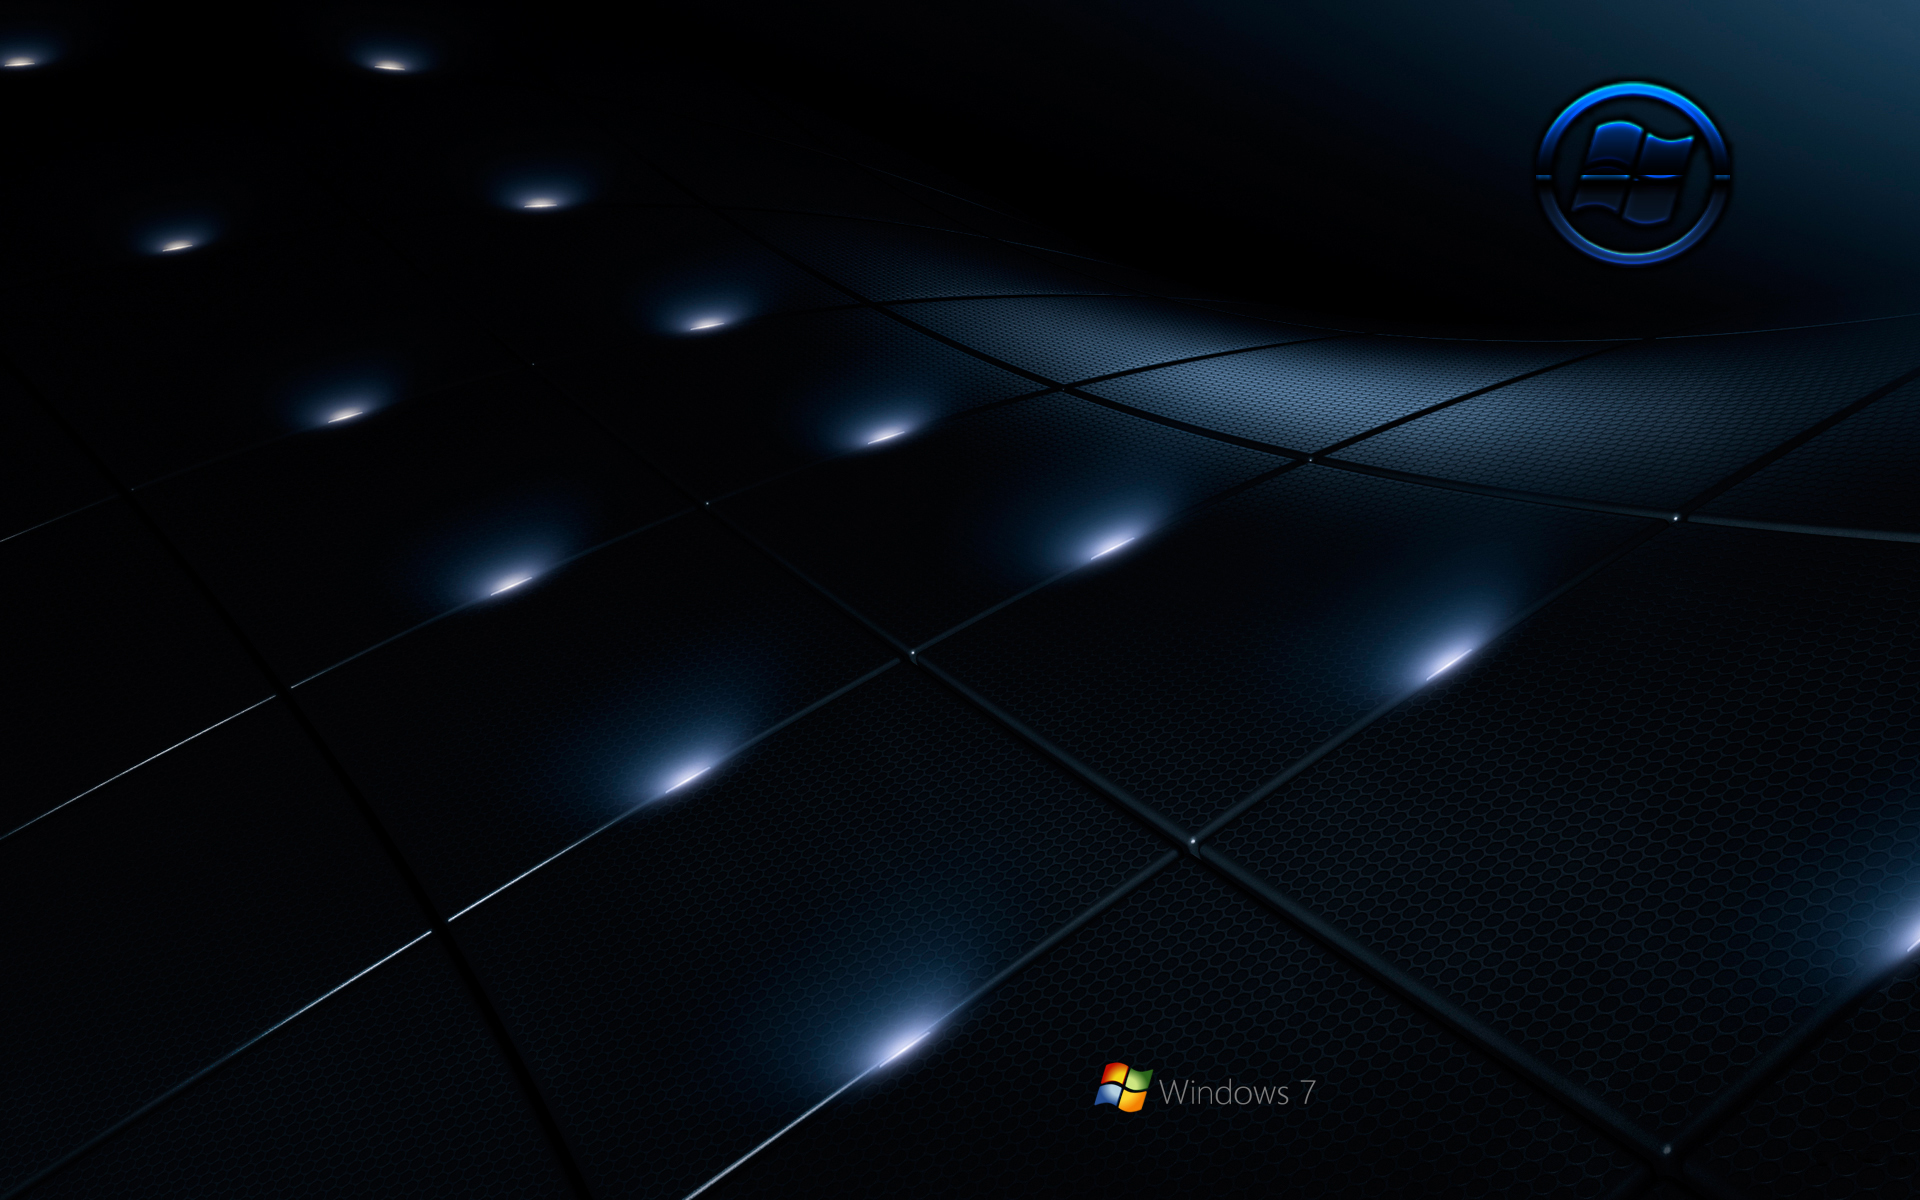 50 Black Windows 7 Wallpaper On Wallpapersafari